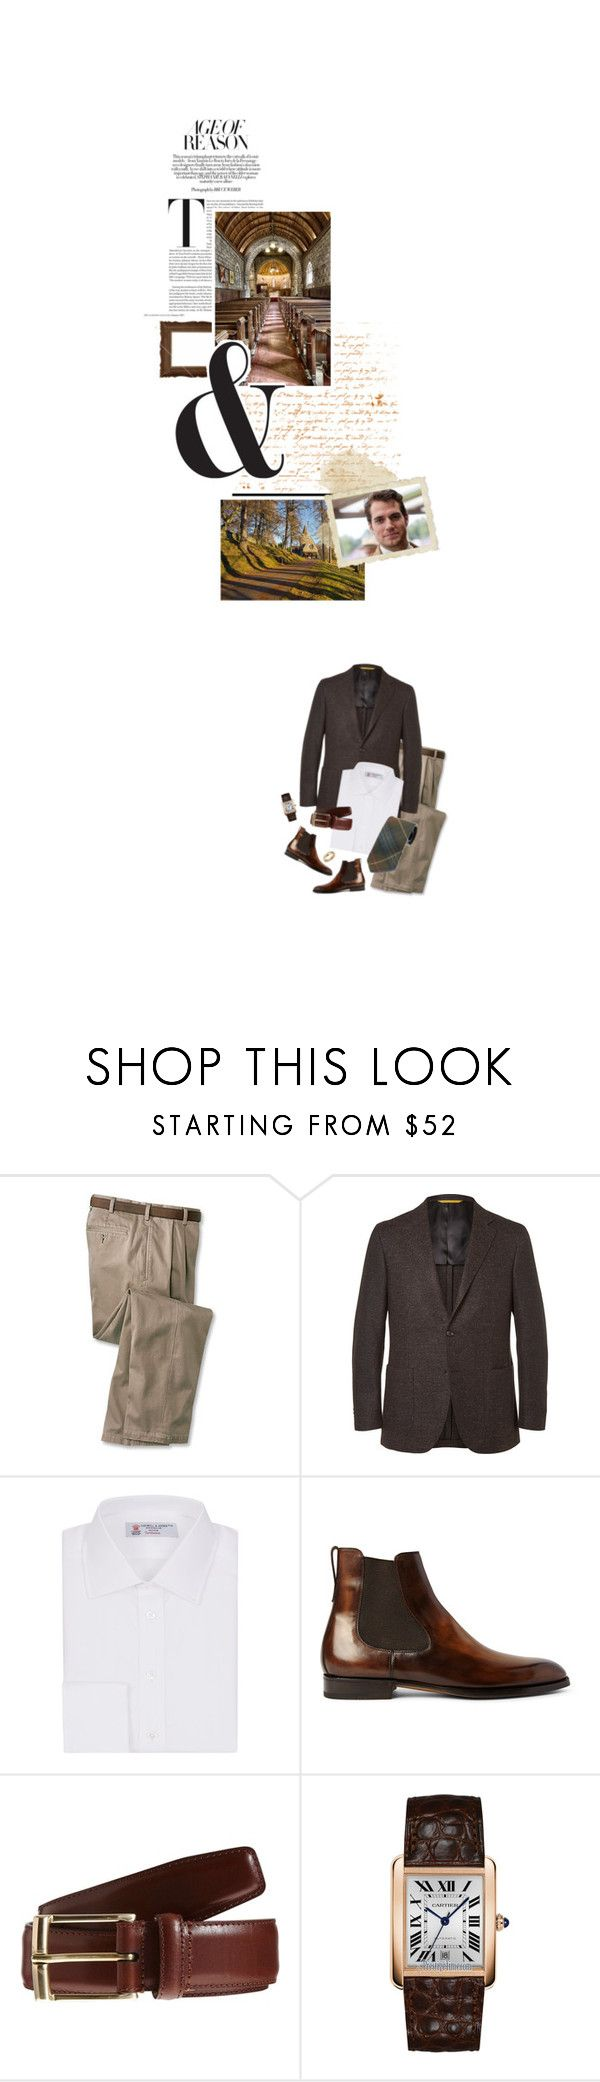 """""""(A) Attends church at Crathie Kirk on the Balmoral Estate"""" by immortal-longings ❤ liked on Polyvore featuring Canali, Turnbull & Asser, Berluti, Crockett & Jones, Cartier, men's fashion and menswear"""